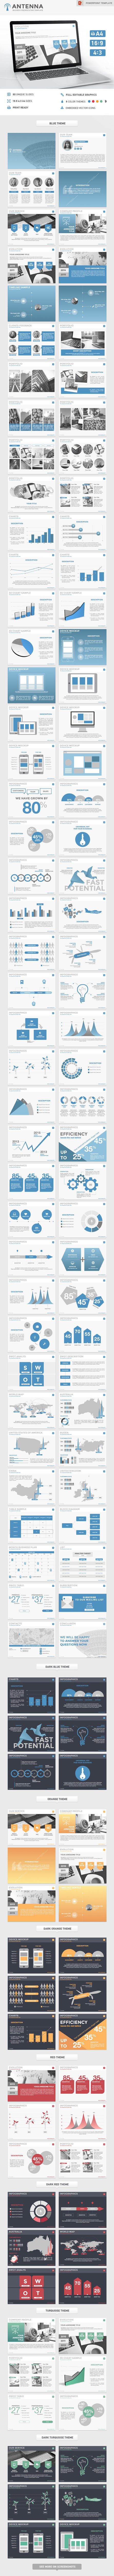 GraphicRiver Antenna PowerPoint Presentation Template 11551985